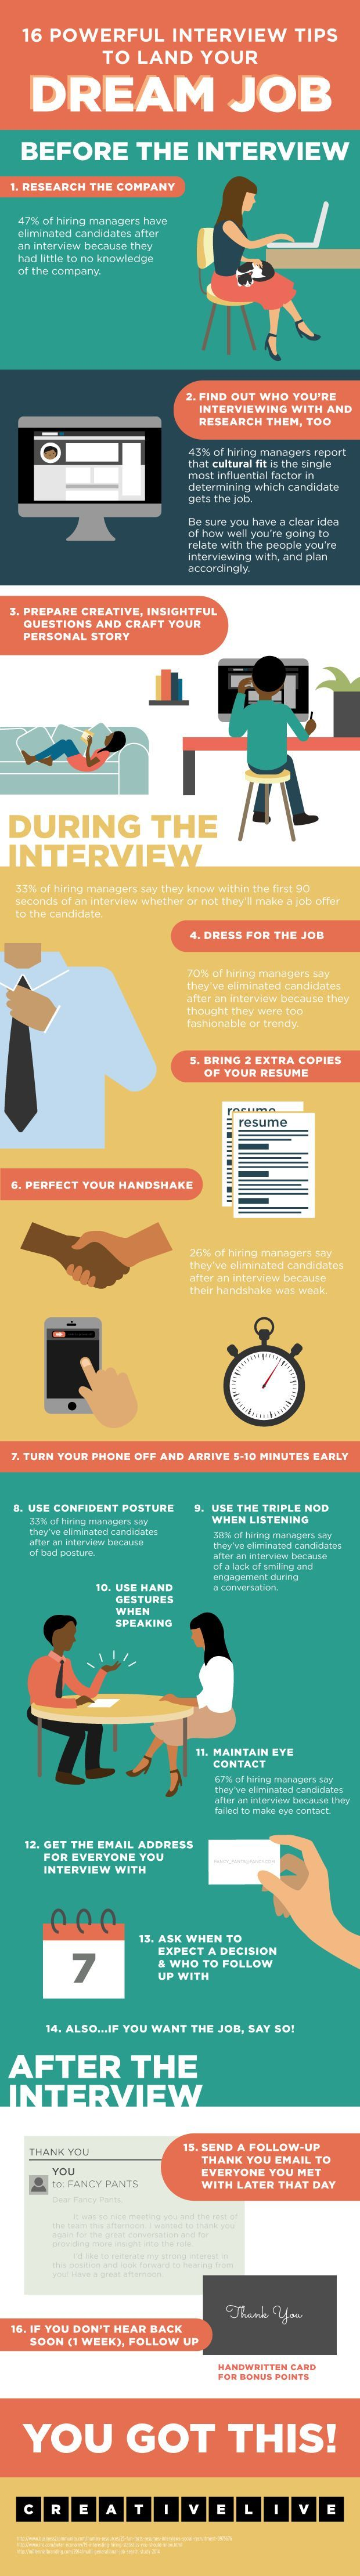 16 Best Interview Tips to Land Your